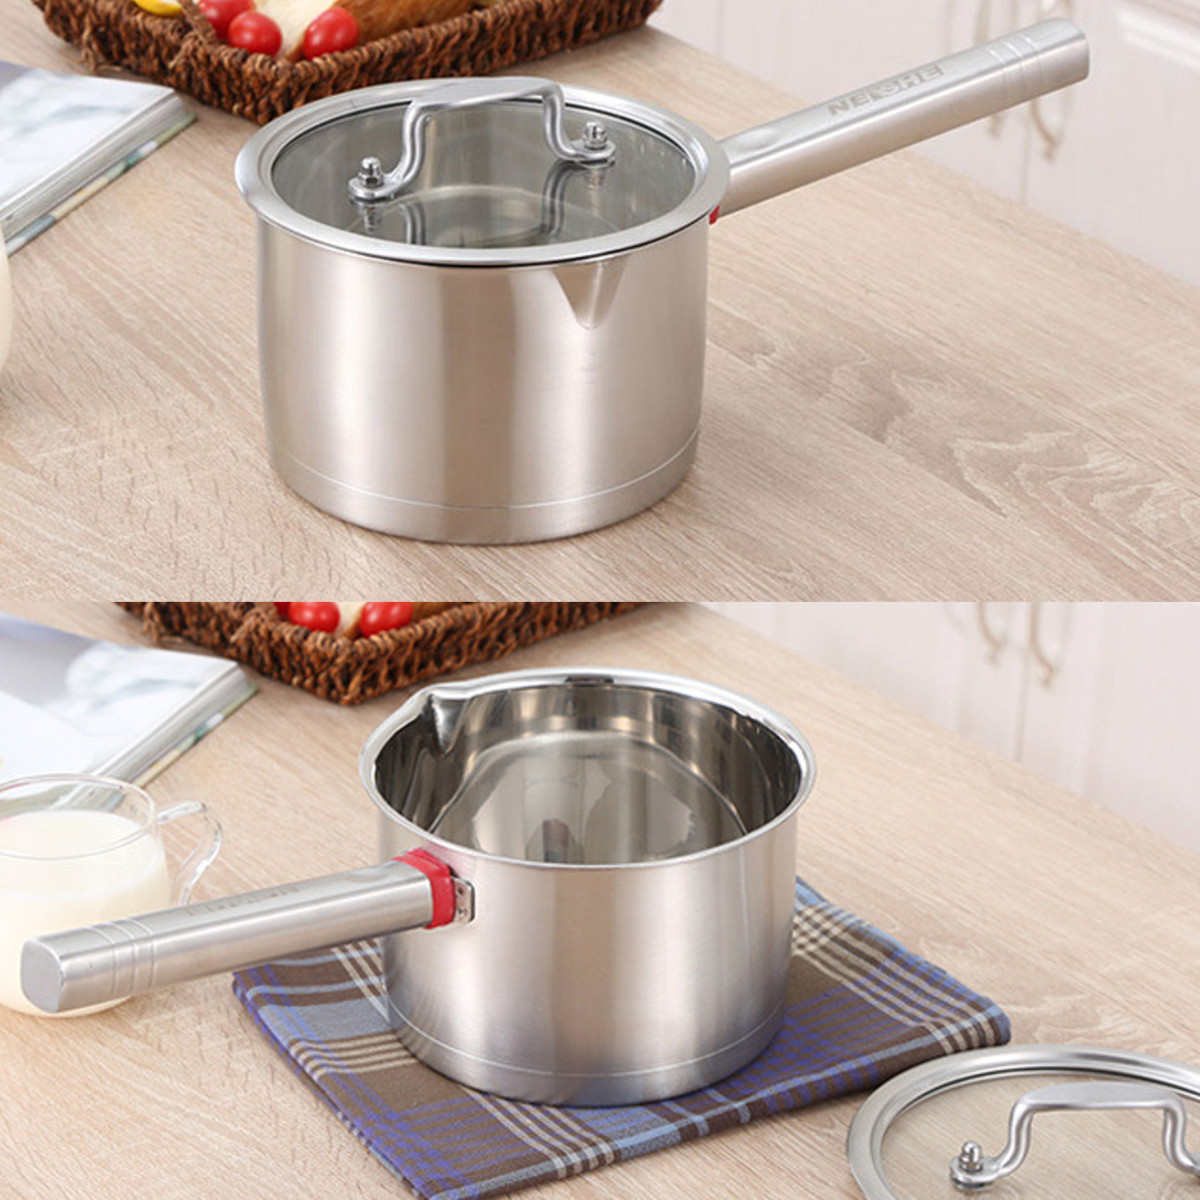 18cm Saucepan with Lid Stainless Steel Induction Cookware Stockpot Milk Soup Pan Milk Pot